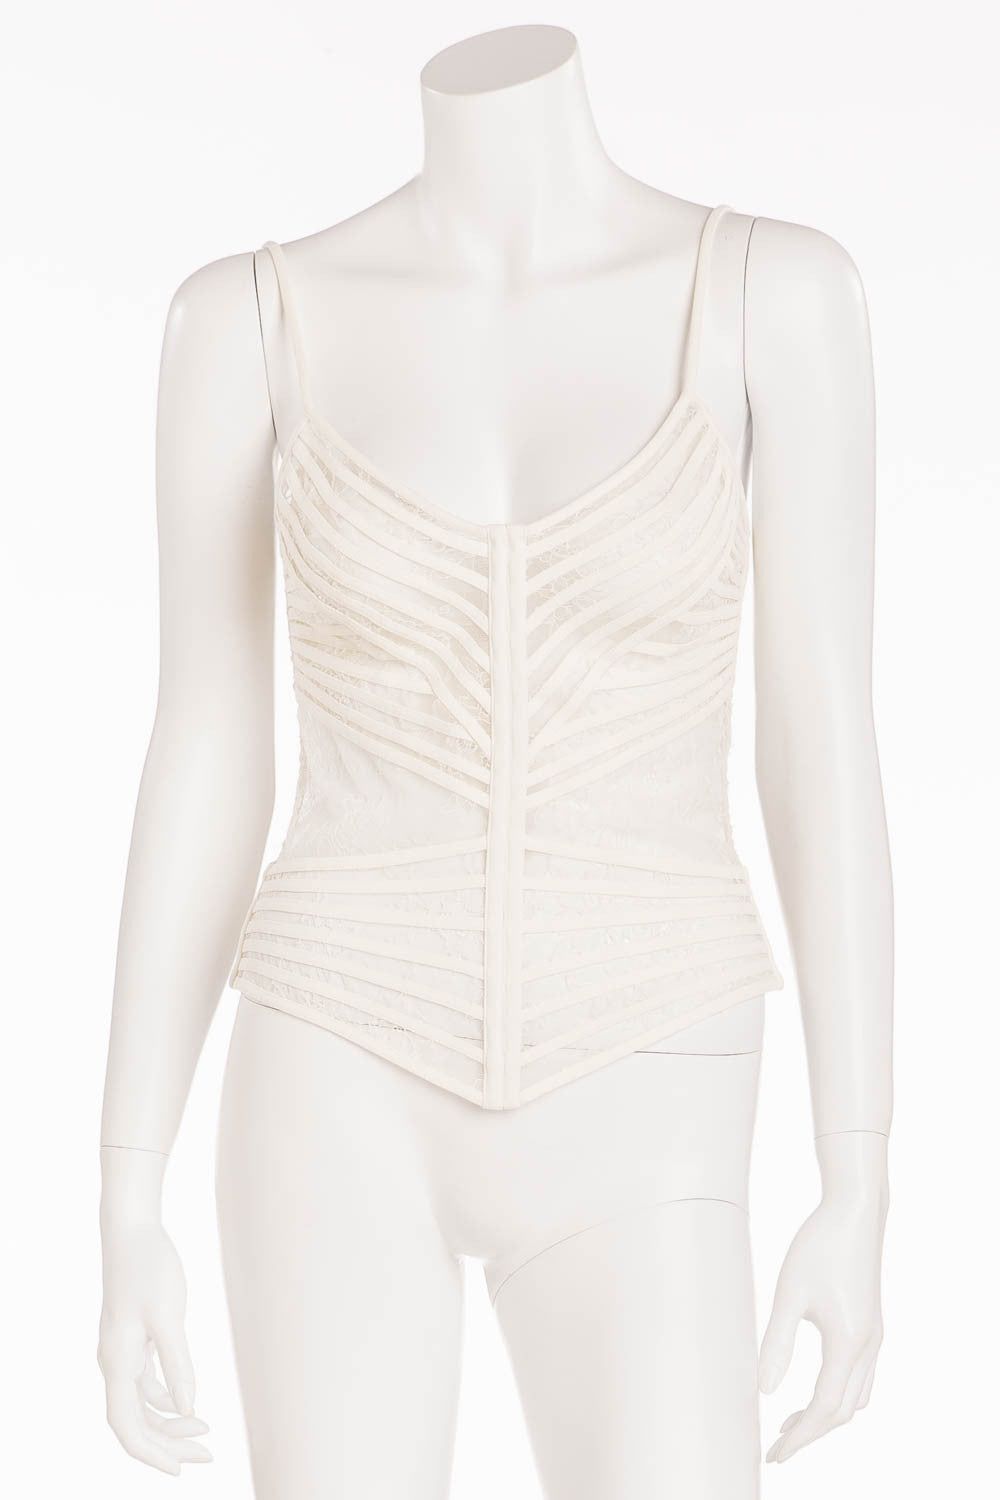 La Perla - Off White Spaghetti Strap Cage Bustier - IT 44